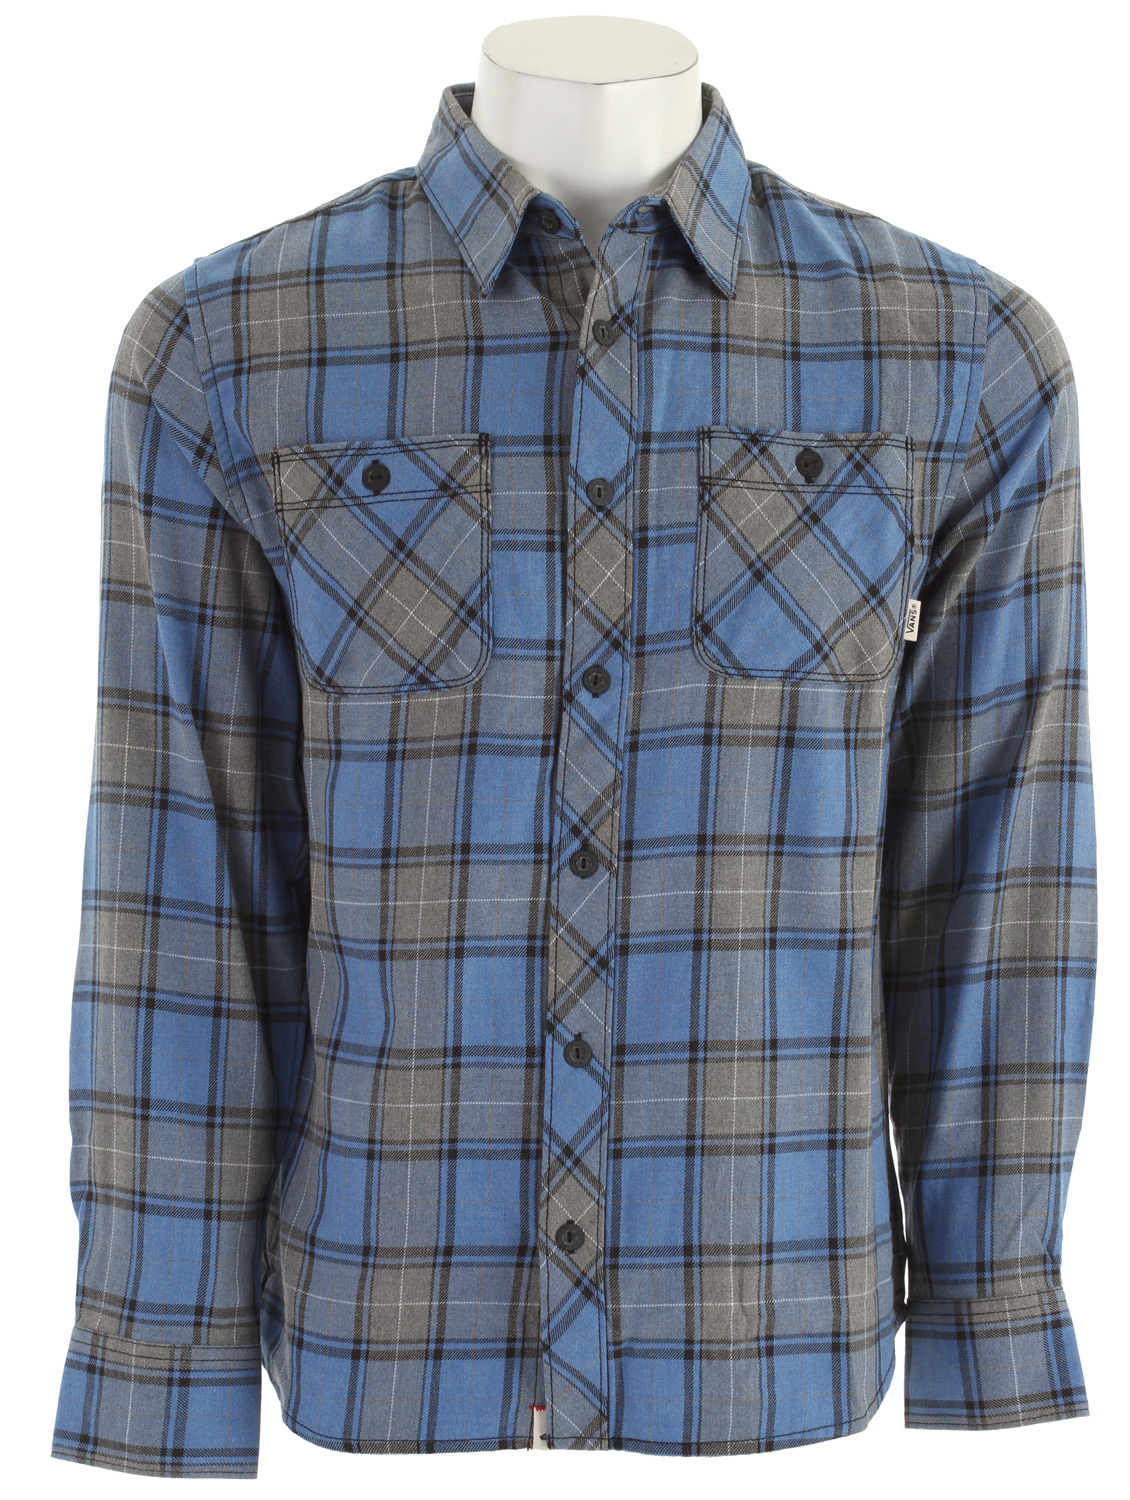 Skateboard Key Features of the Vans Quintessence Shirt: Long Sleeve Woven Button Down Dual chest pockets 100% Cotton - $18.95